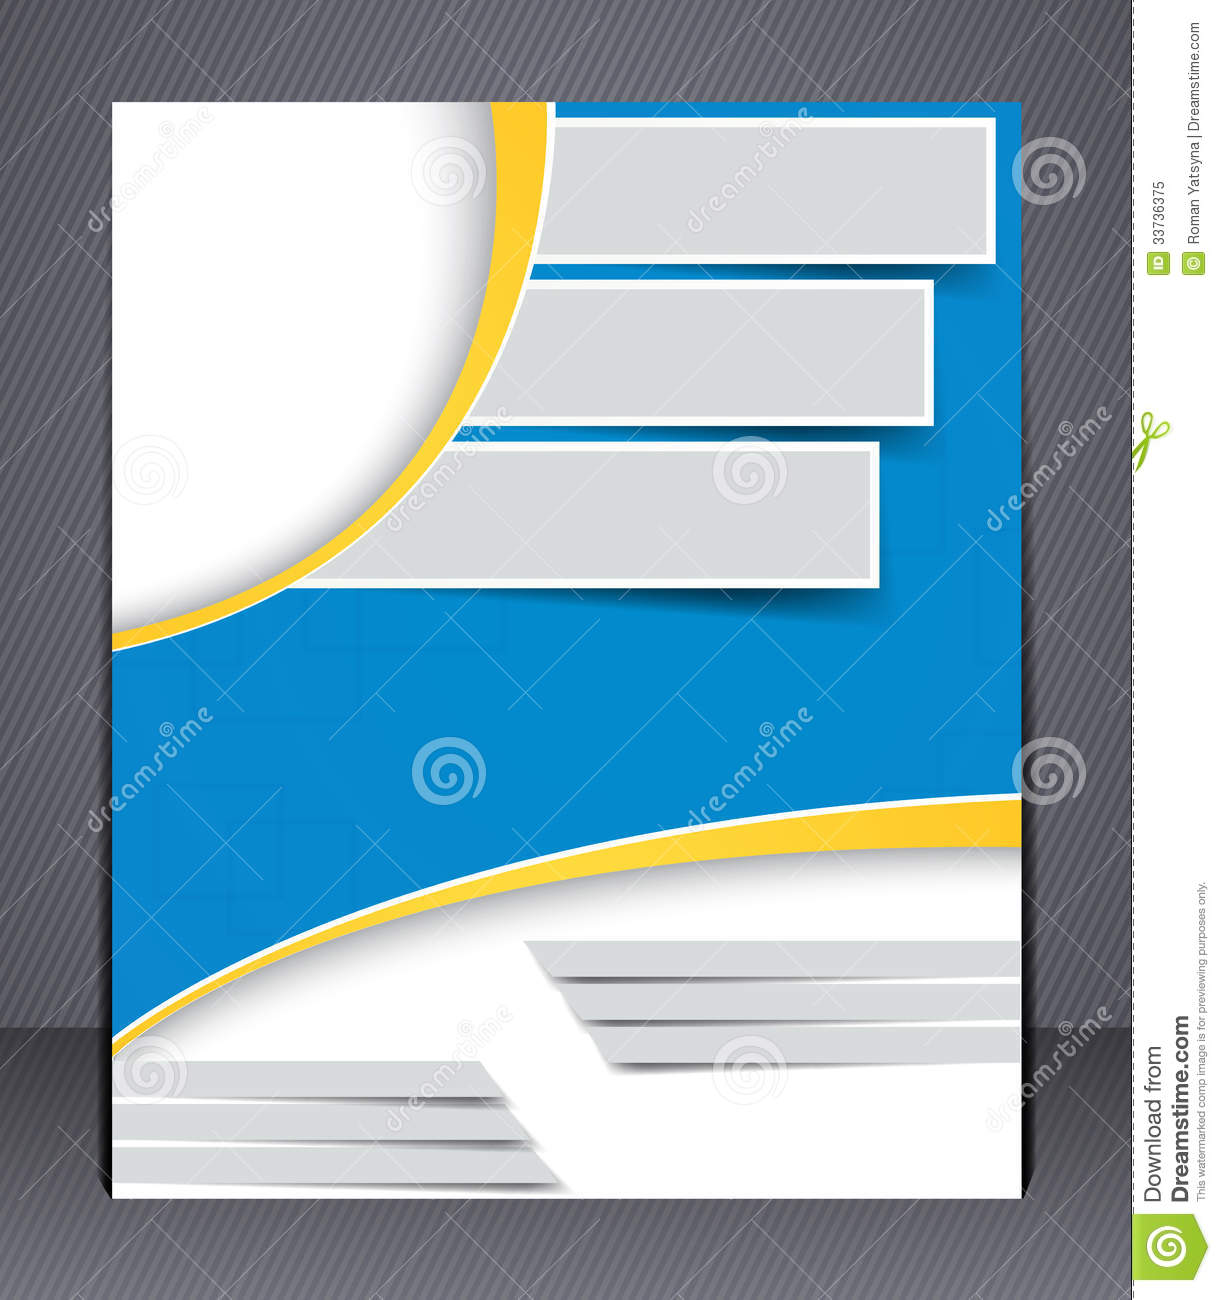 Brochure design in blue and yellow colors stock vector for Free template brochure design